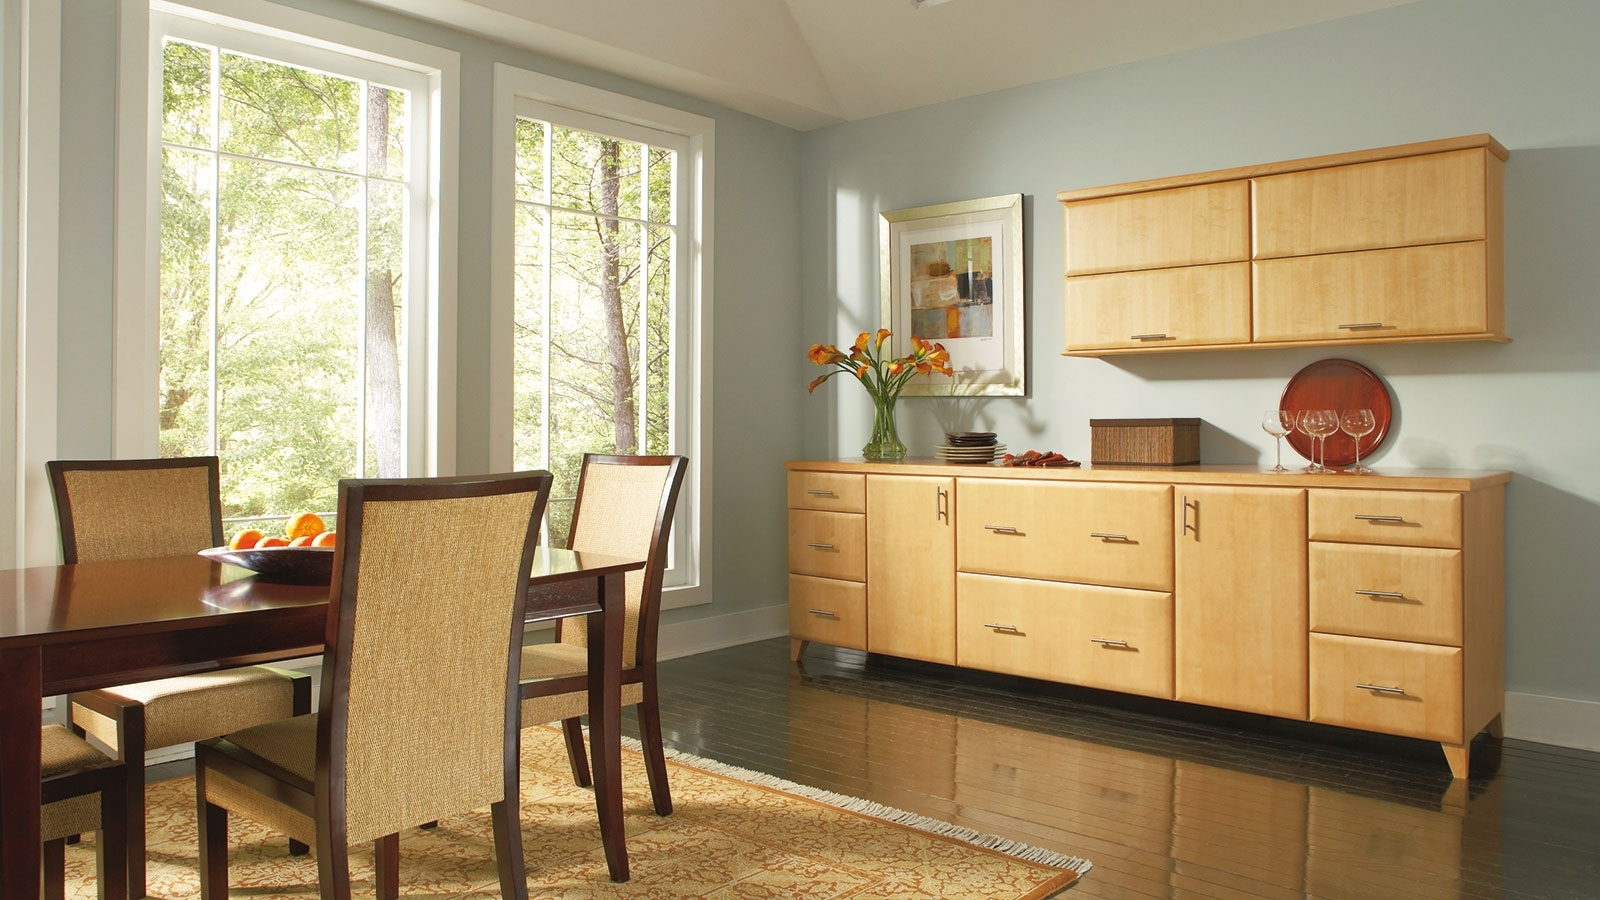 Dining Room Storage Cabinets – Omega Cabinetry With Most Popular Dining Room Cabinets (View 10 of 25)